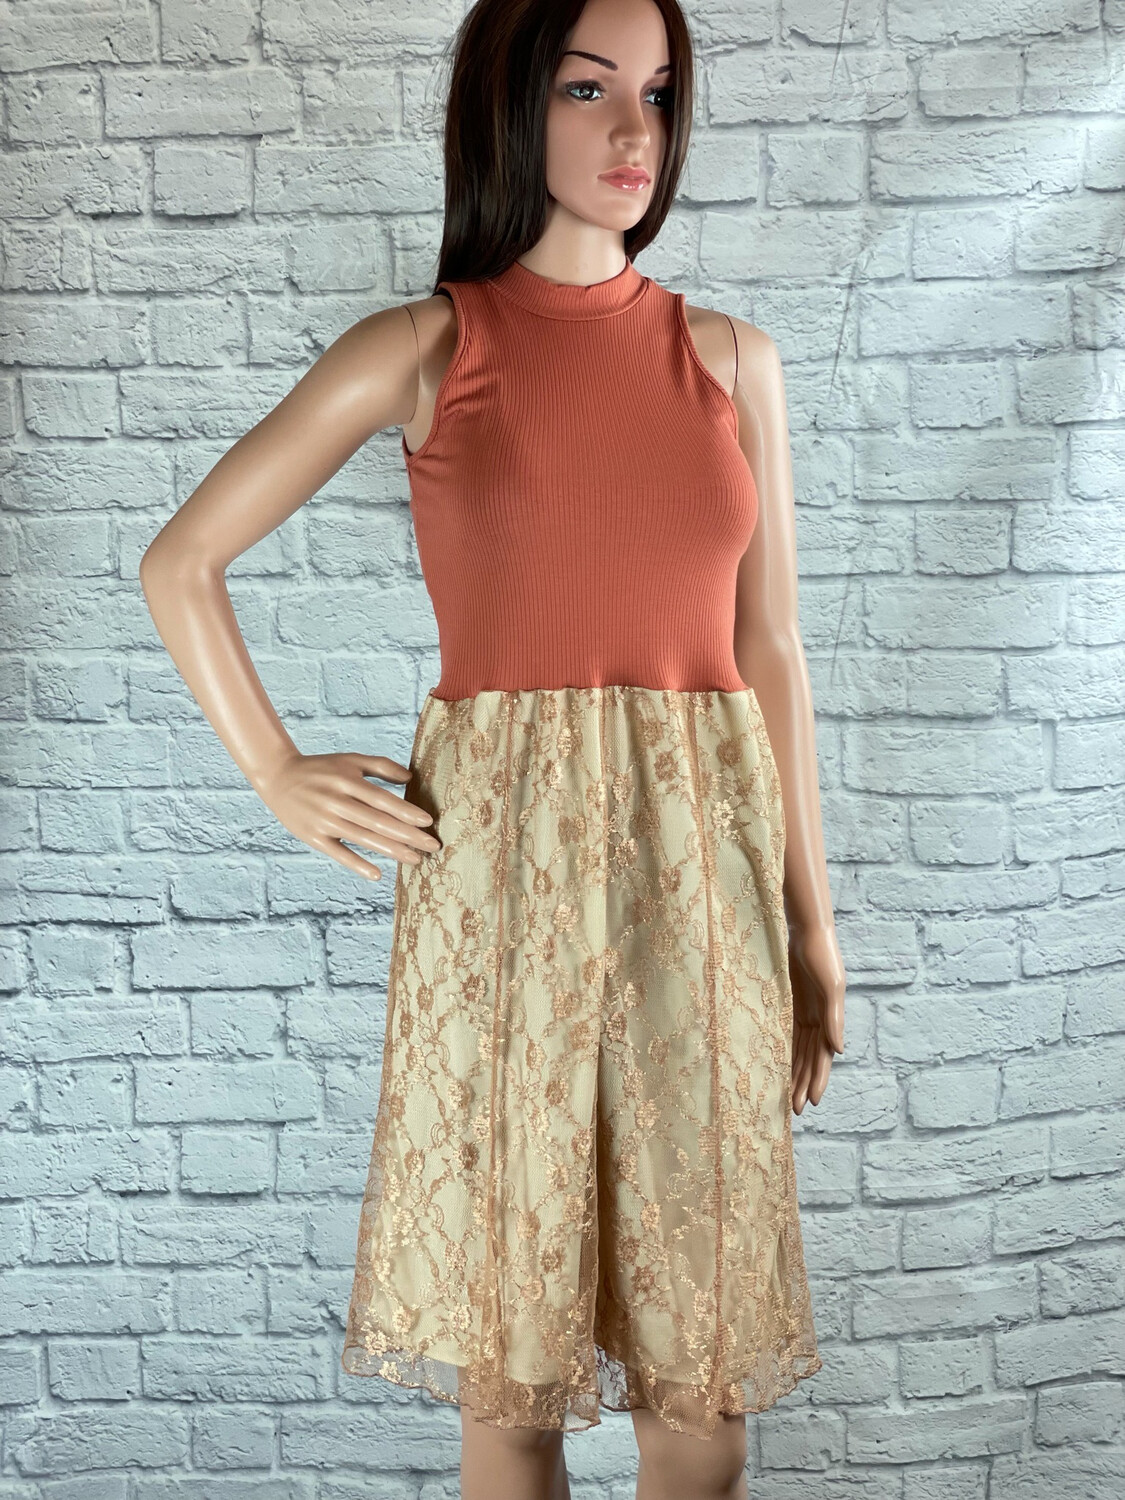 S Threads Upcycled Dress High Neck Lace Size XS/S/M